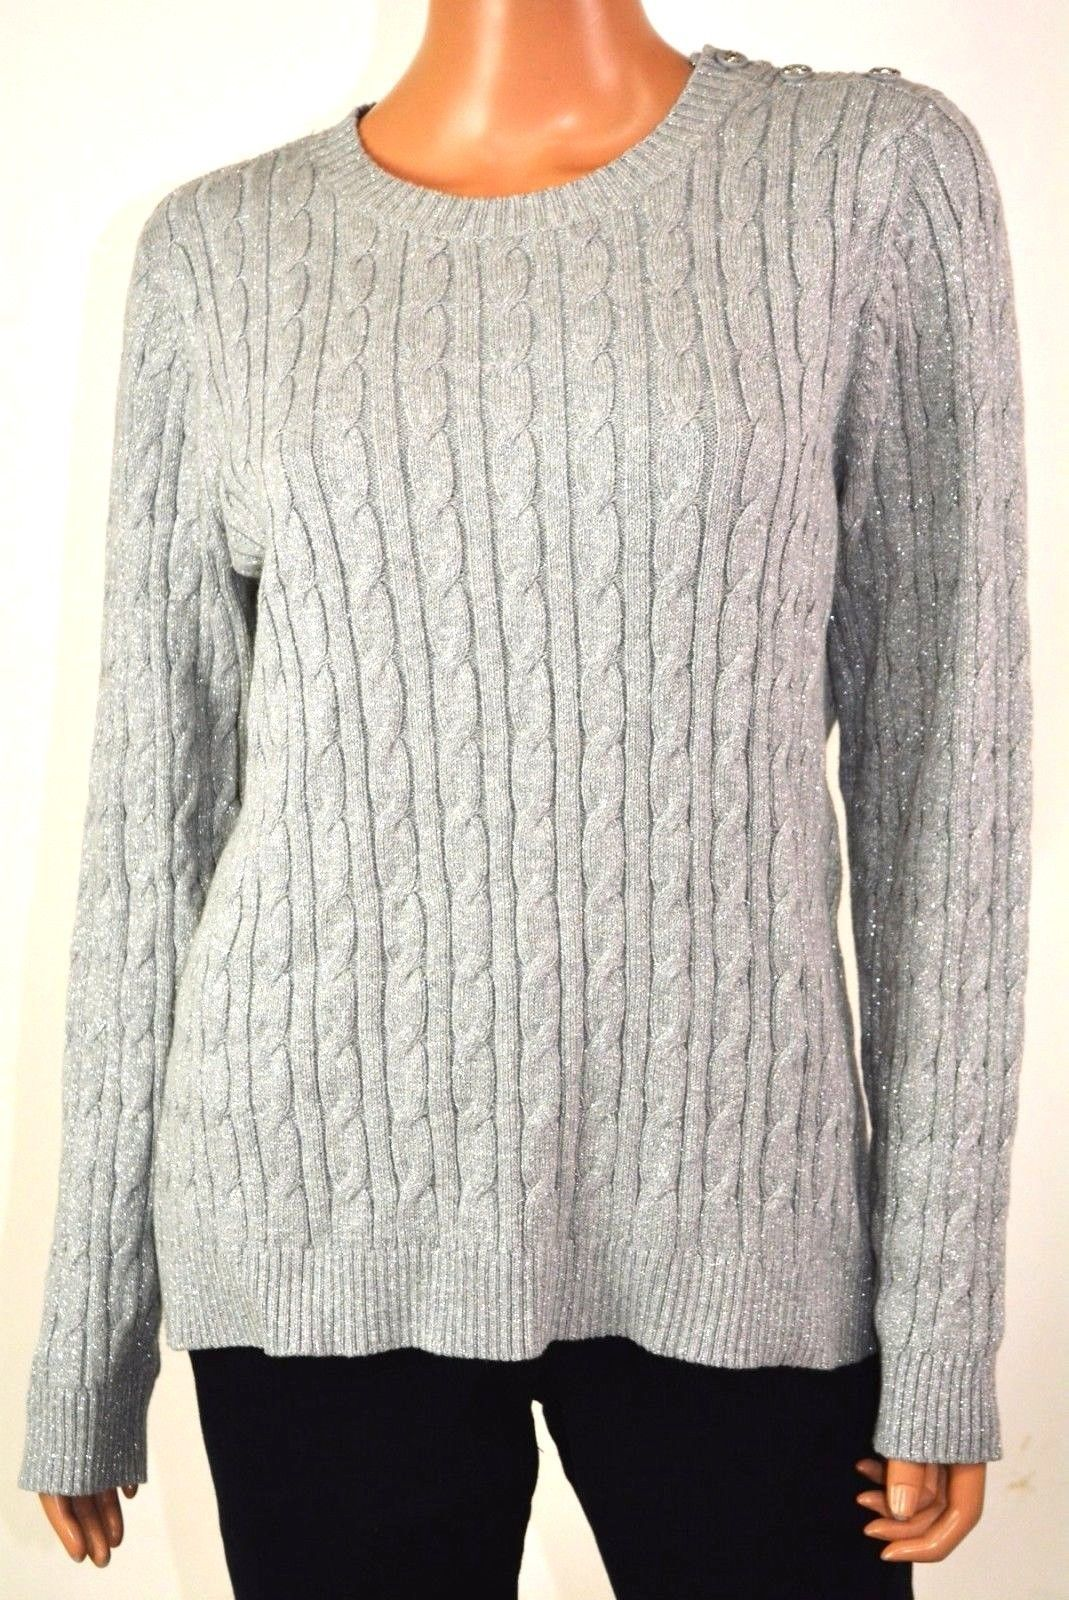 Charter Club Women Crew-Neck Metallic Gray Embellished Cable Knit Sweater Top L